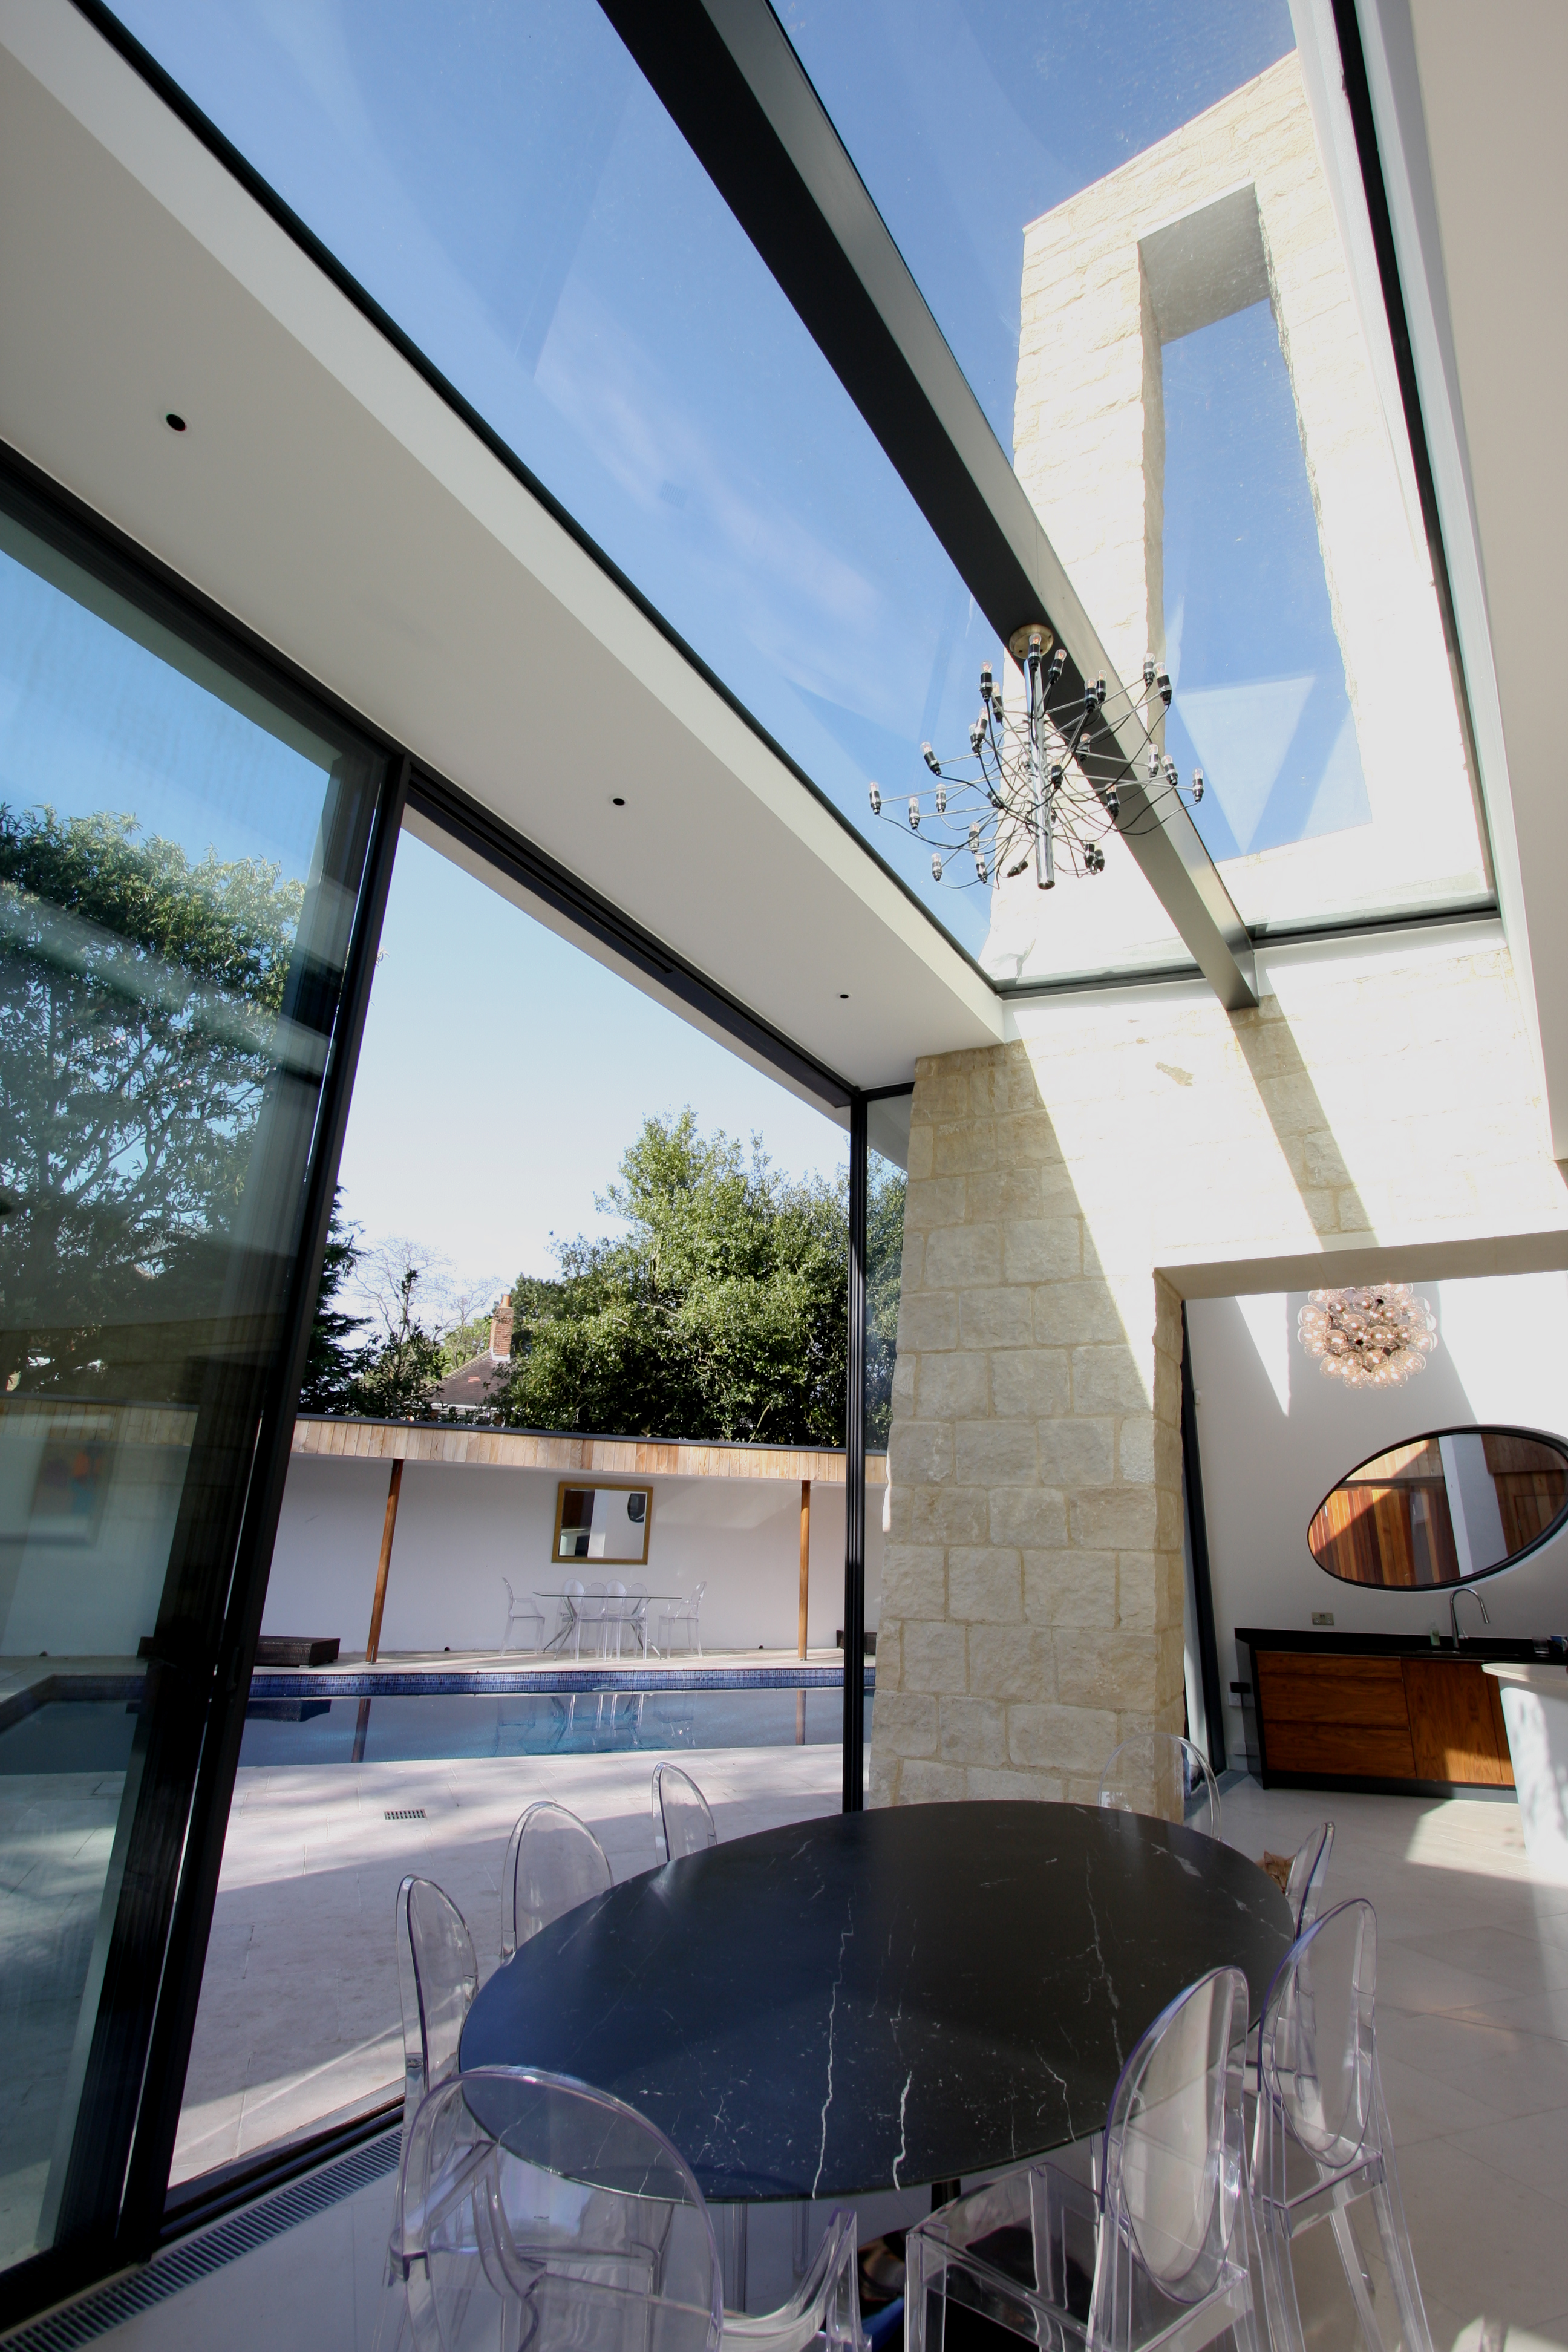 A glass roof to a contemporary home in Richmond using steel supports